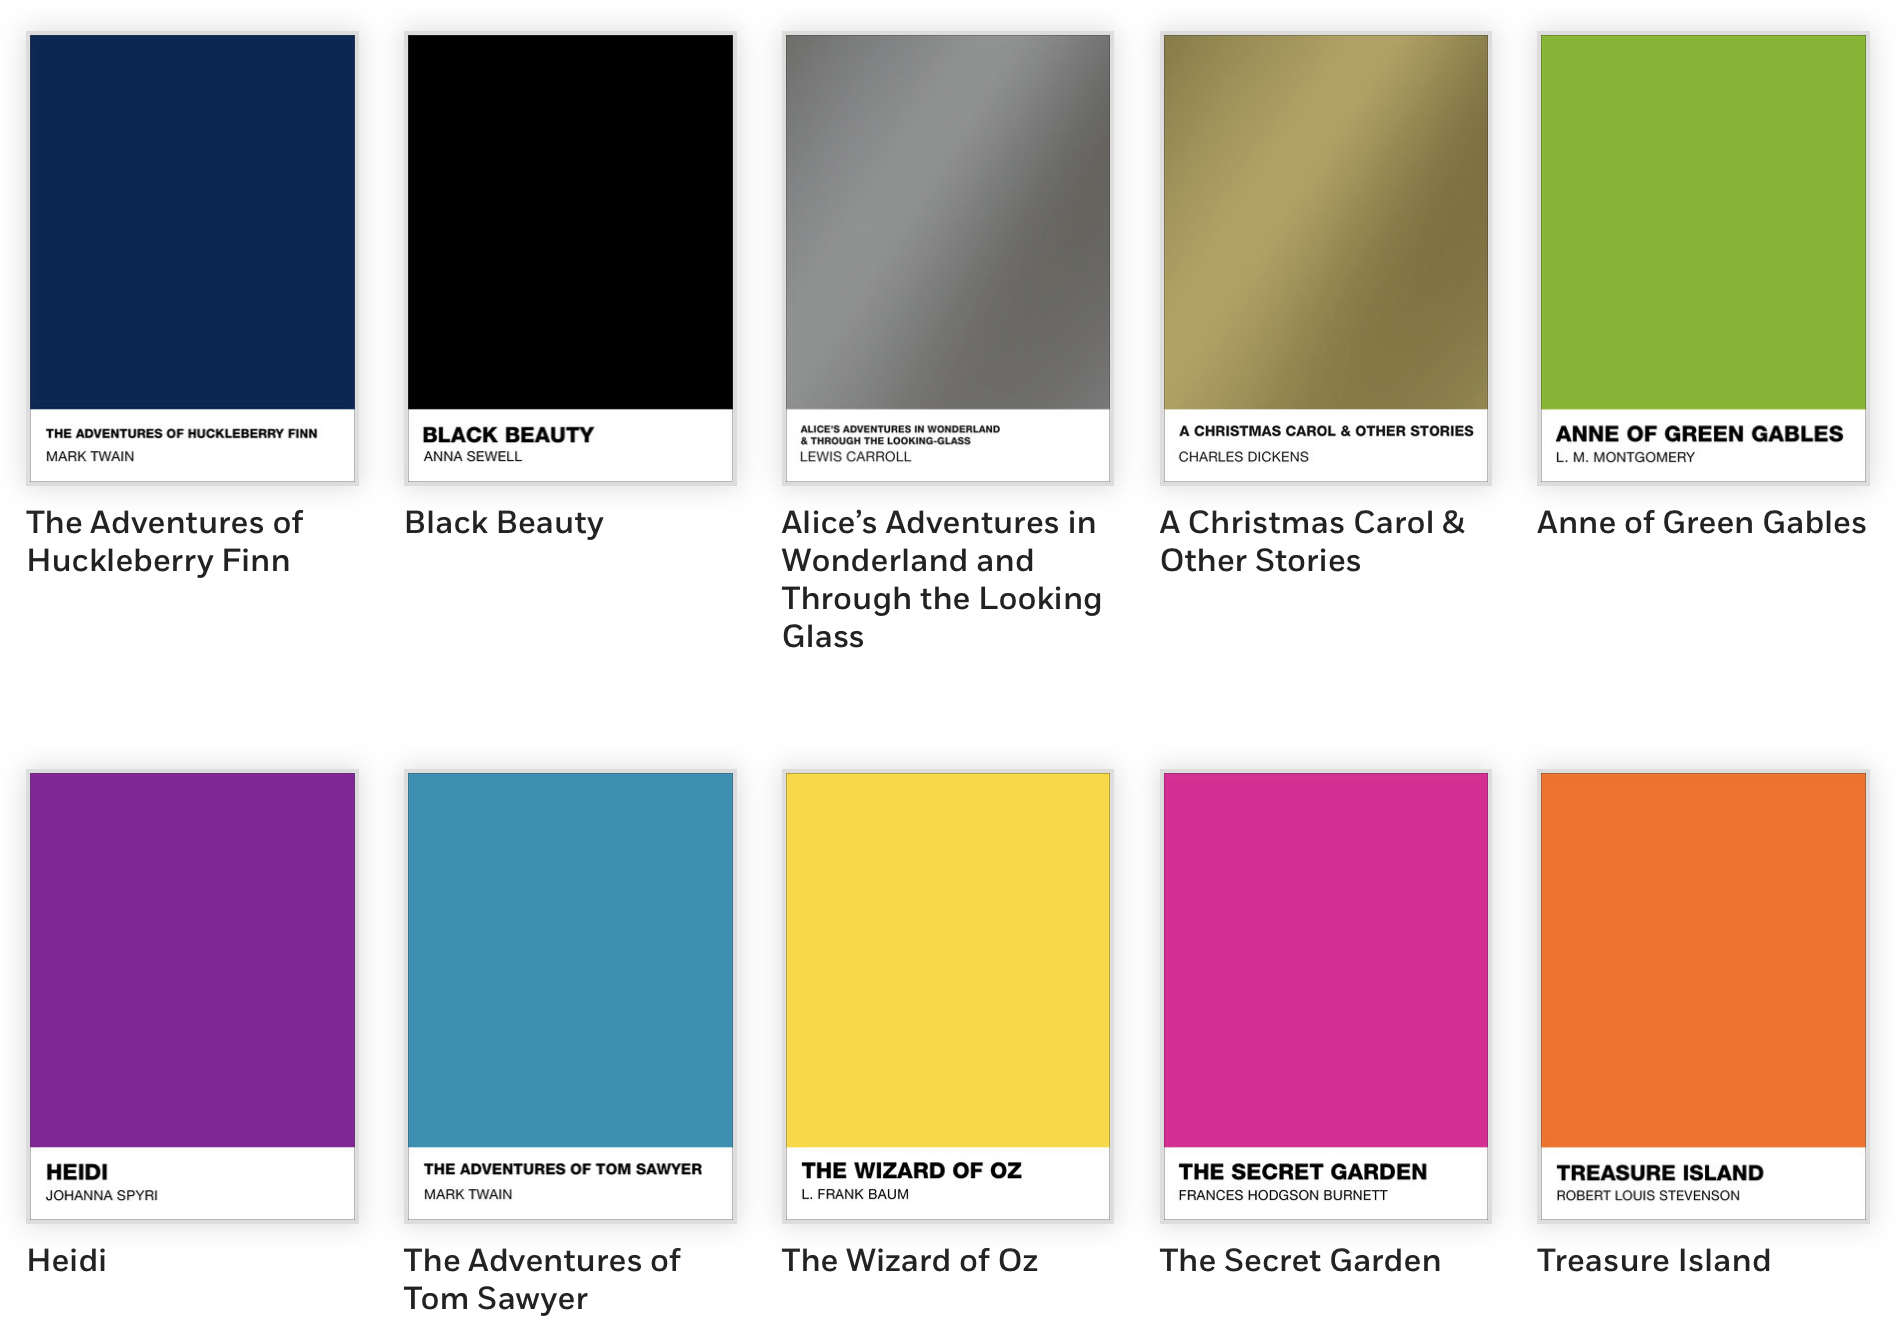 Puffin Books and Pantone